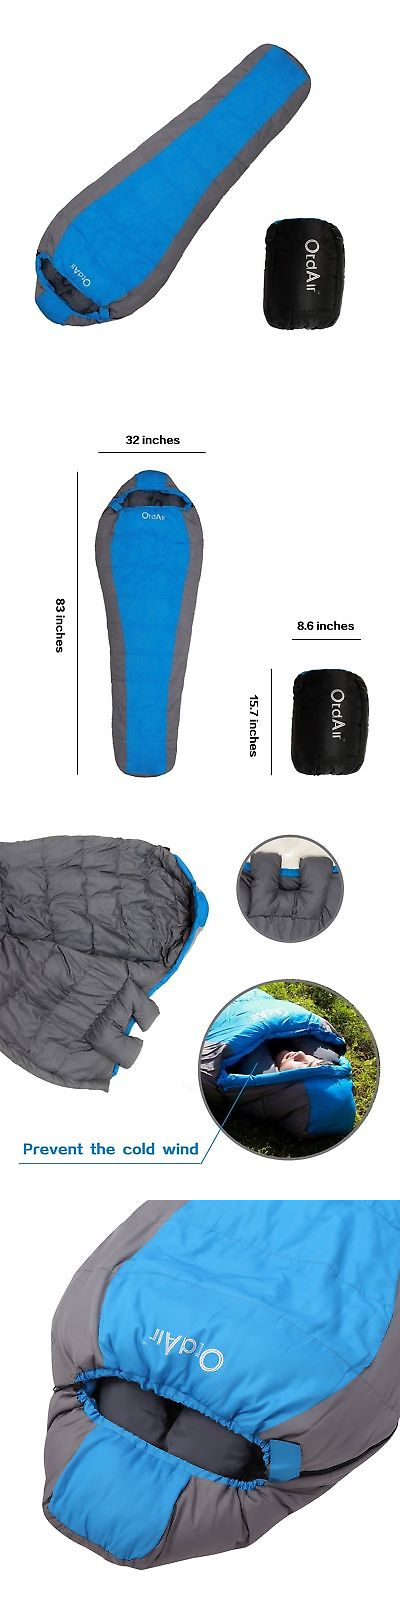 Sleeping Bags 87100: Otdair Sleeping Bag With Waterproof Lightweight Protable Mummy Sleeping Bag F... -> BUY IT NOW ONLY: $35.98 on eBay!